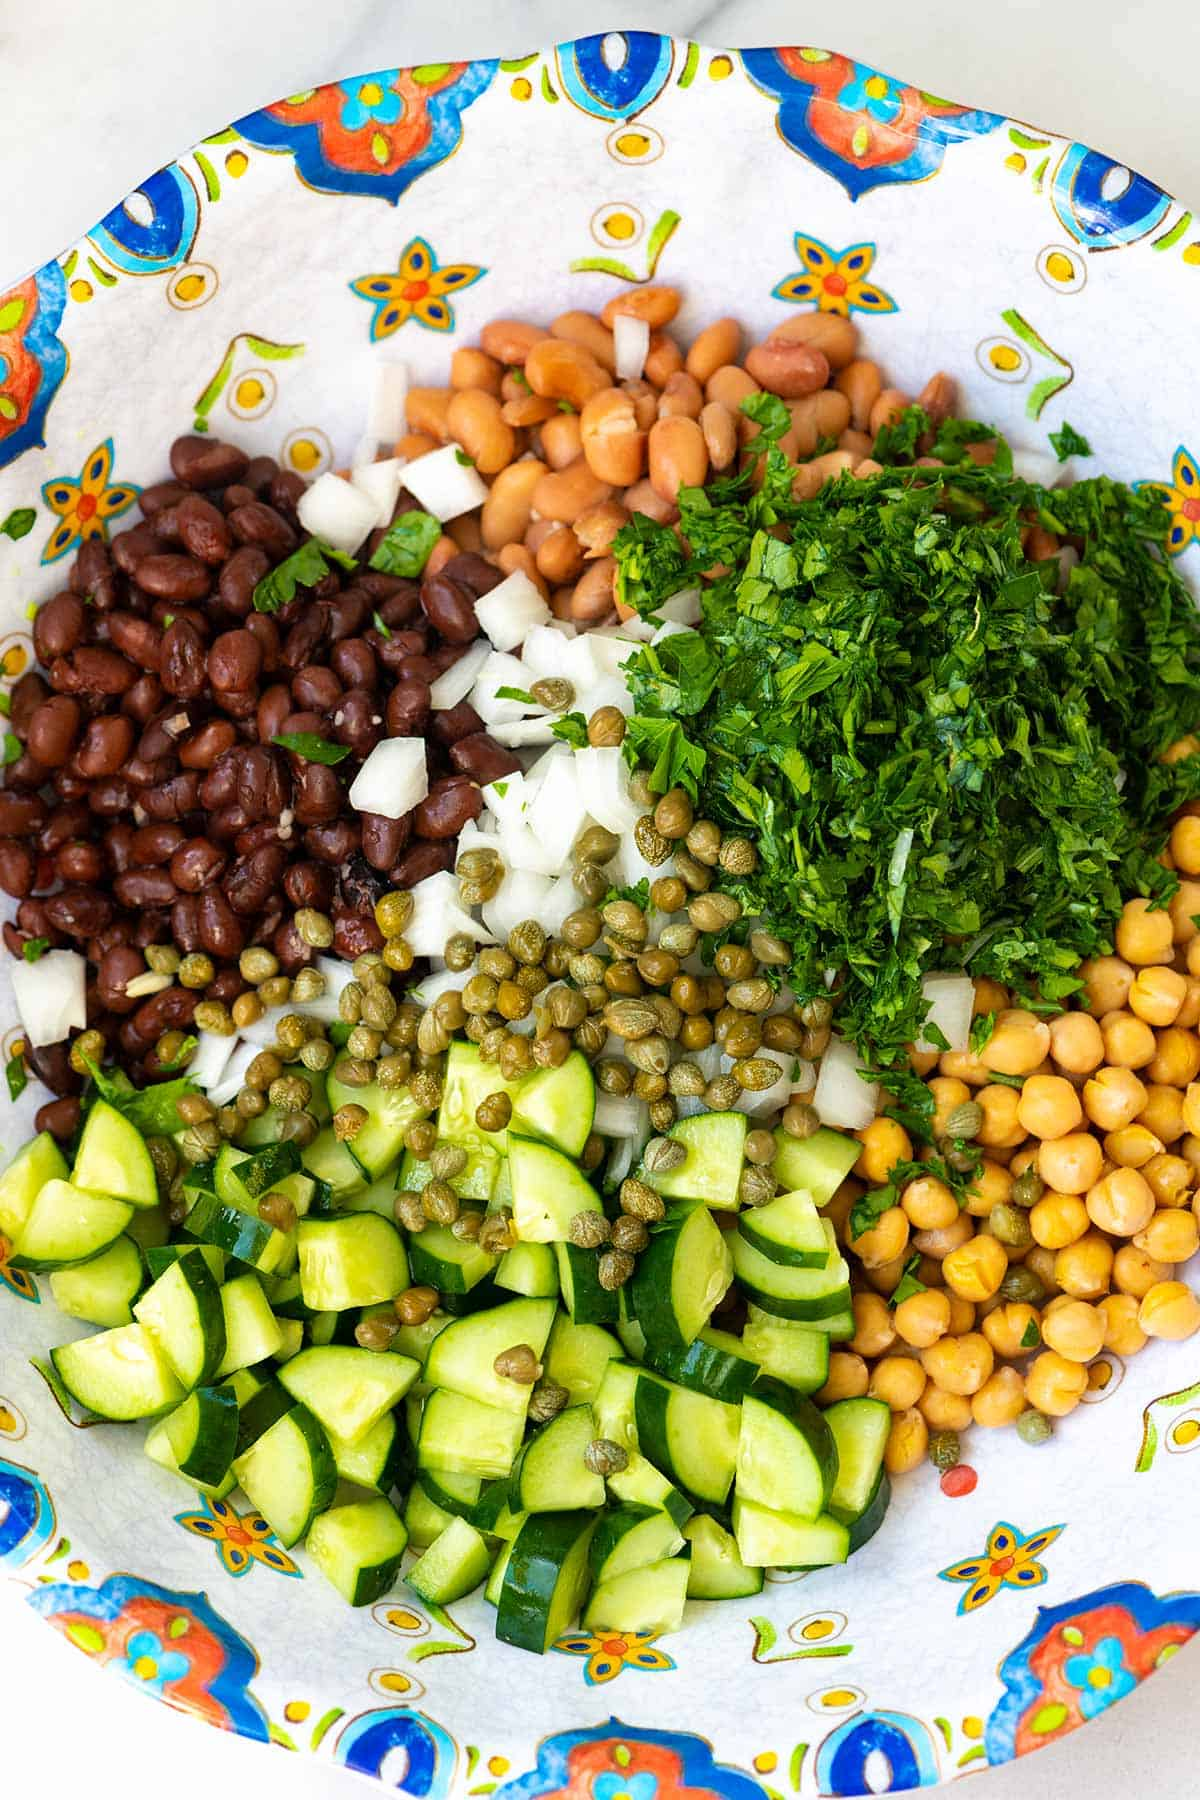 Ingredients for bean salad (beans, onion, cucumbers and parsley)